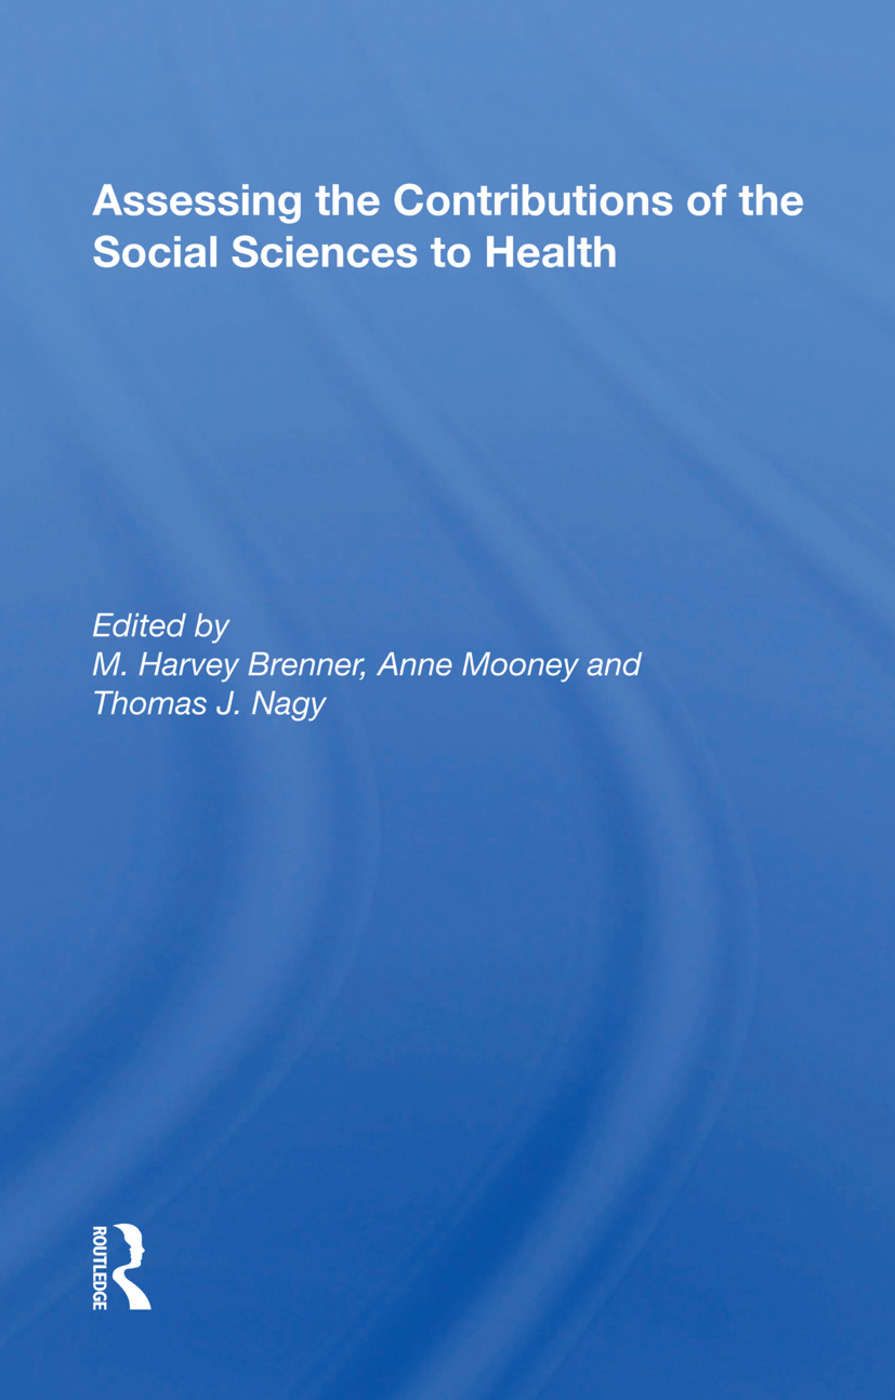 Assessing the Contributions of the Social Sciences to Health book cover